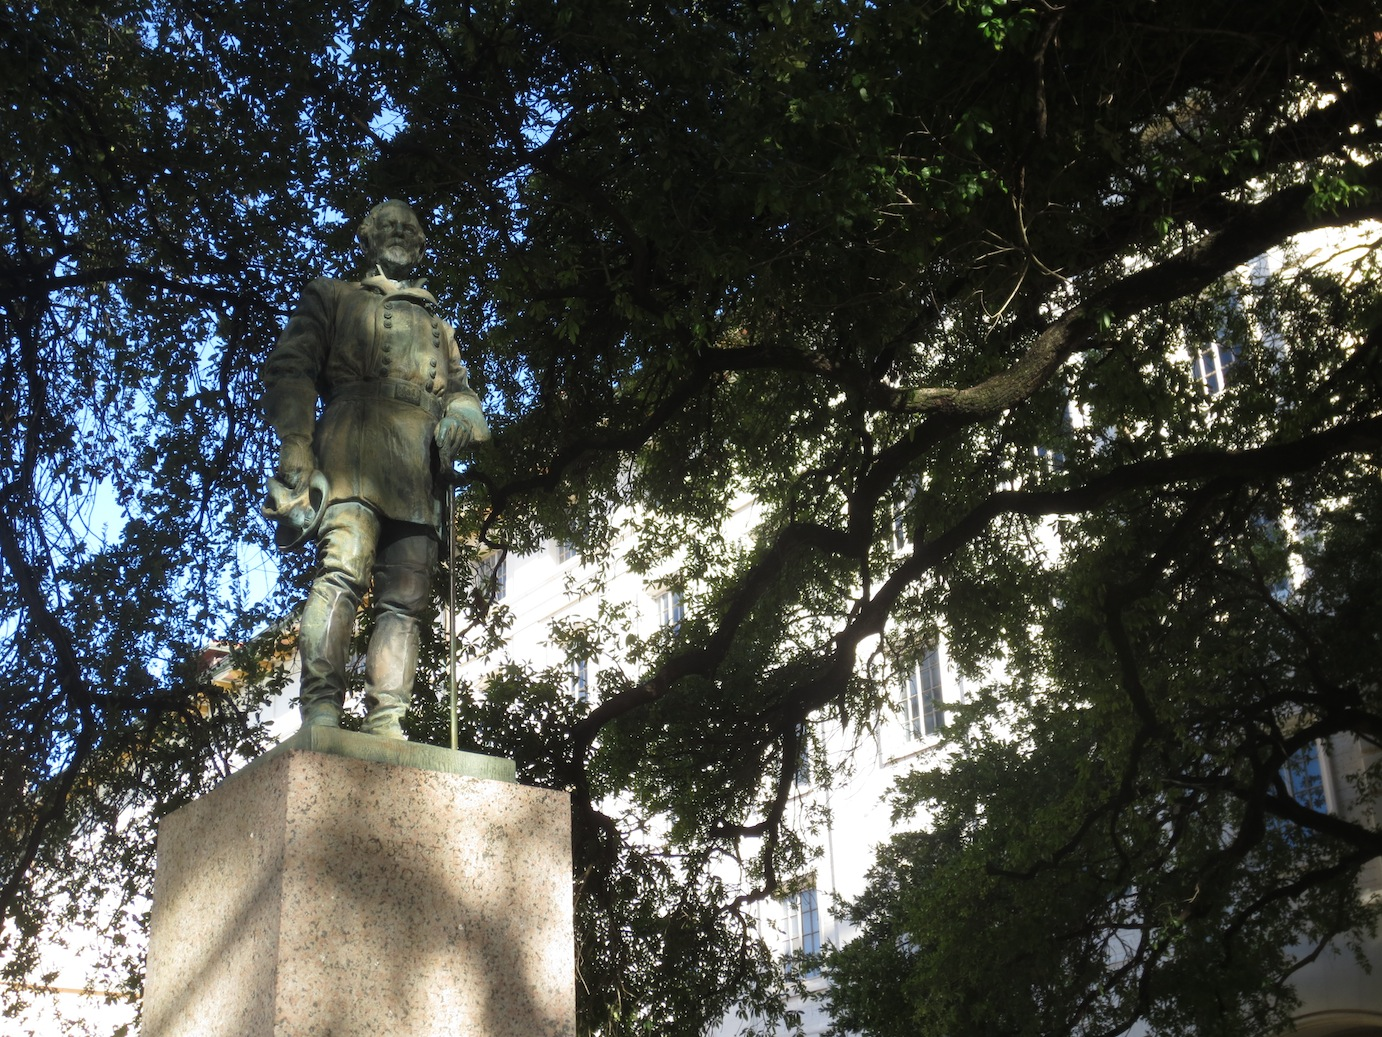 Statue of Robert E. Lee on UT-Austin campus